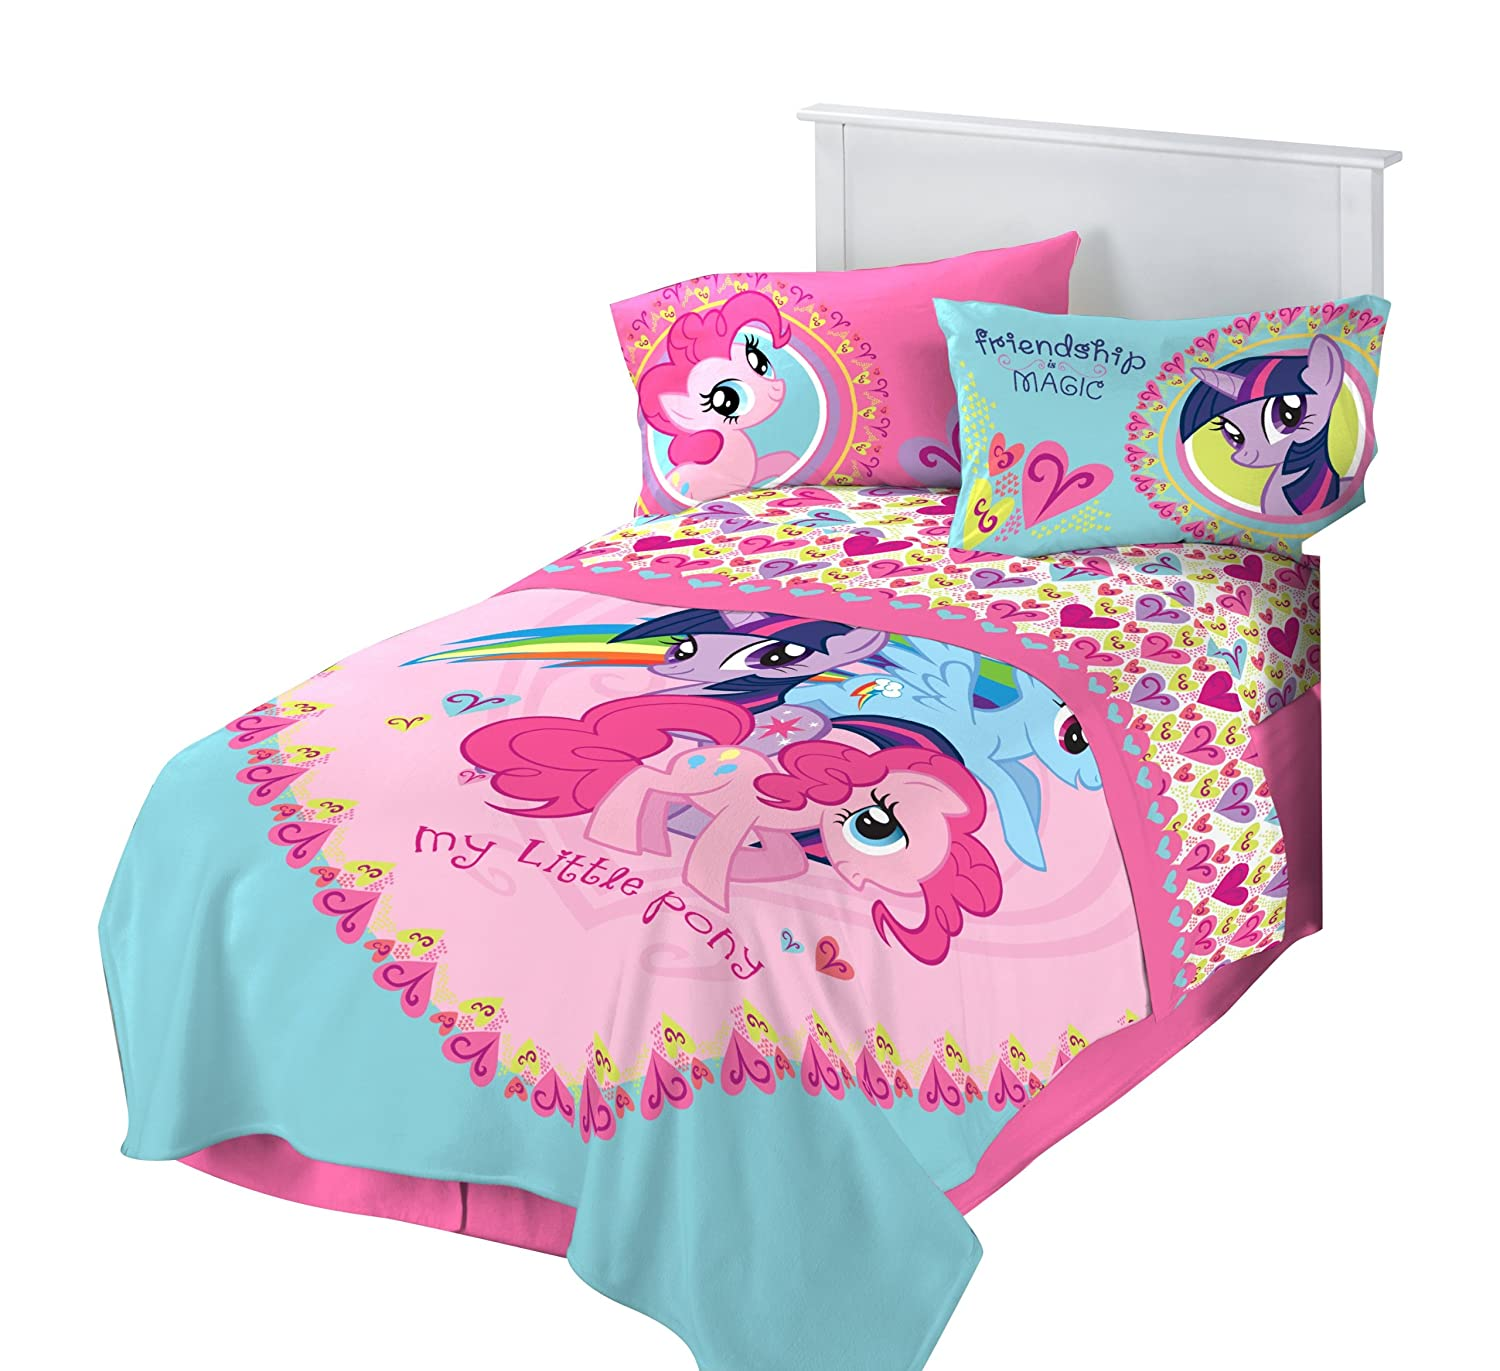 My Little Pony Blanket